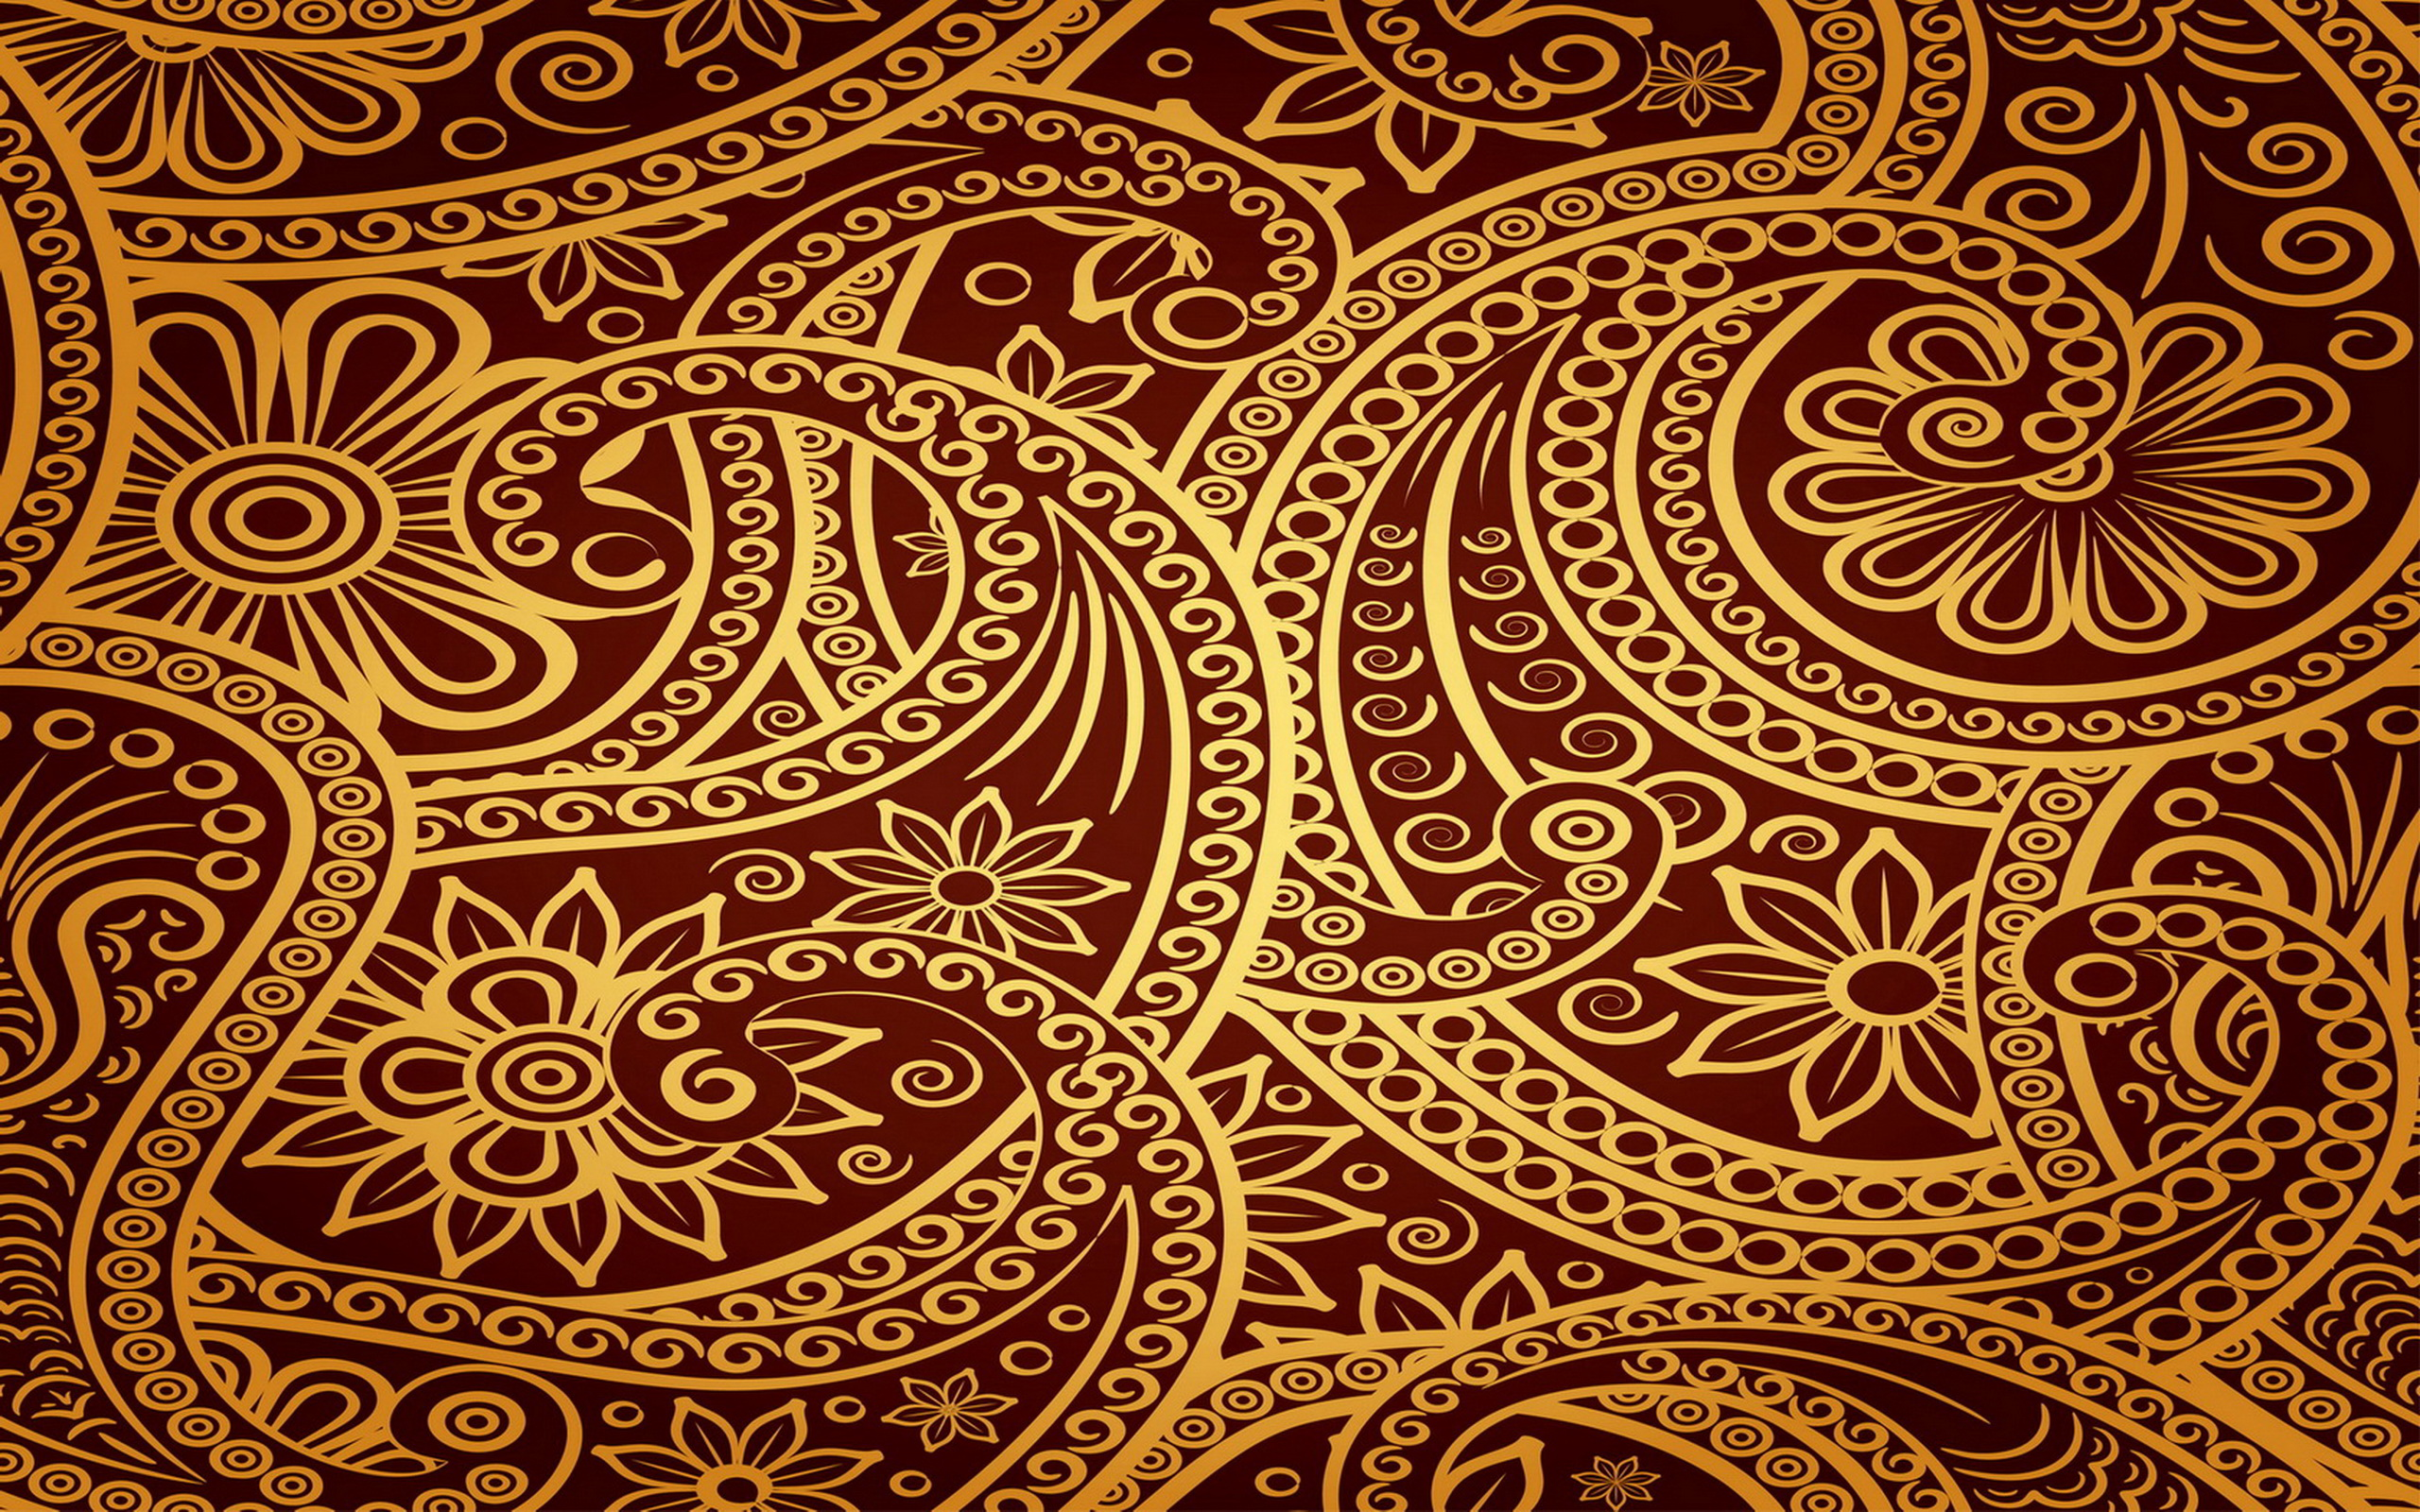 Mandala Wallpaper Iphone 6 Ornamental Full Hd Wallpaper And Background 2560x1600